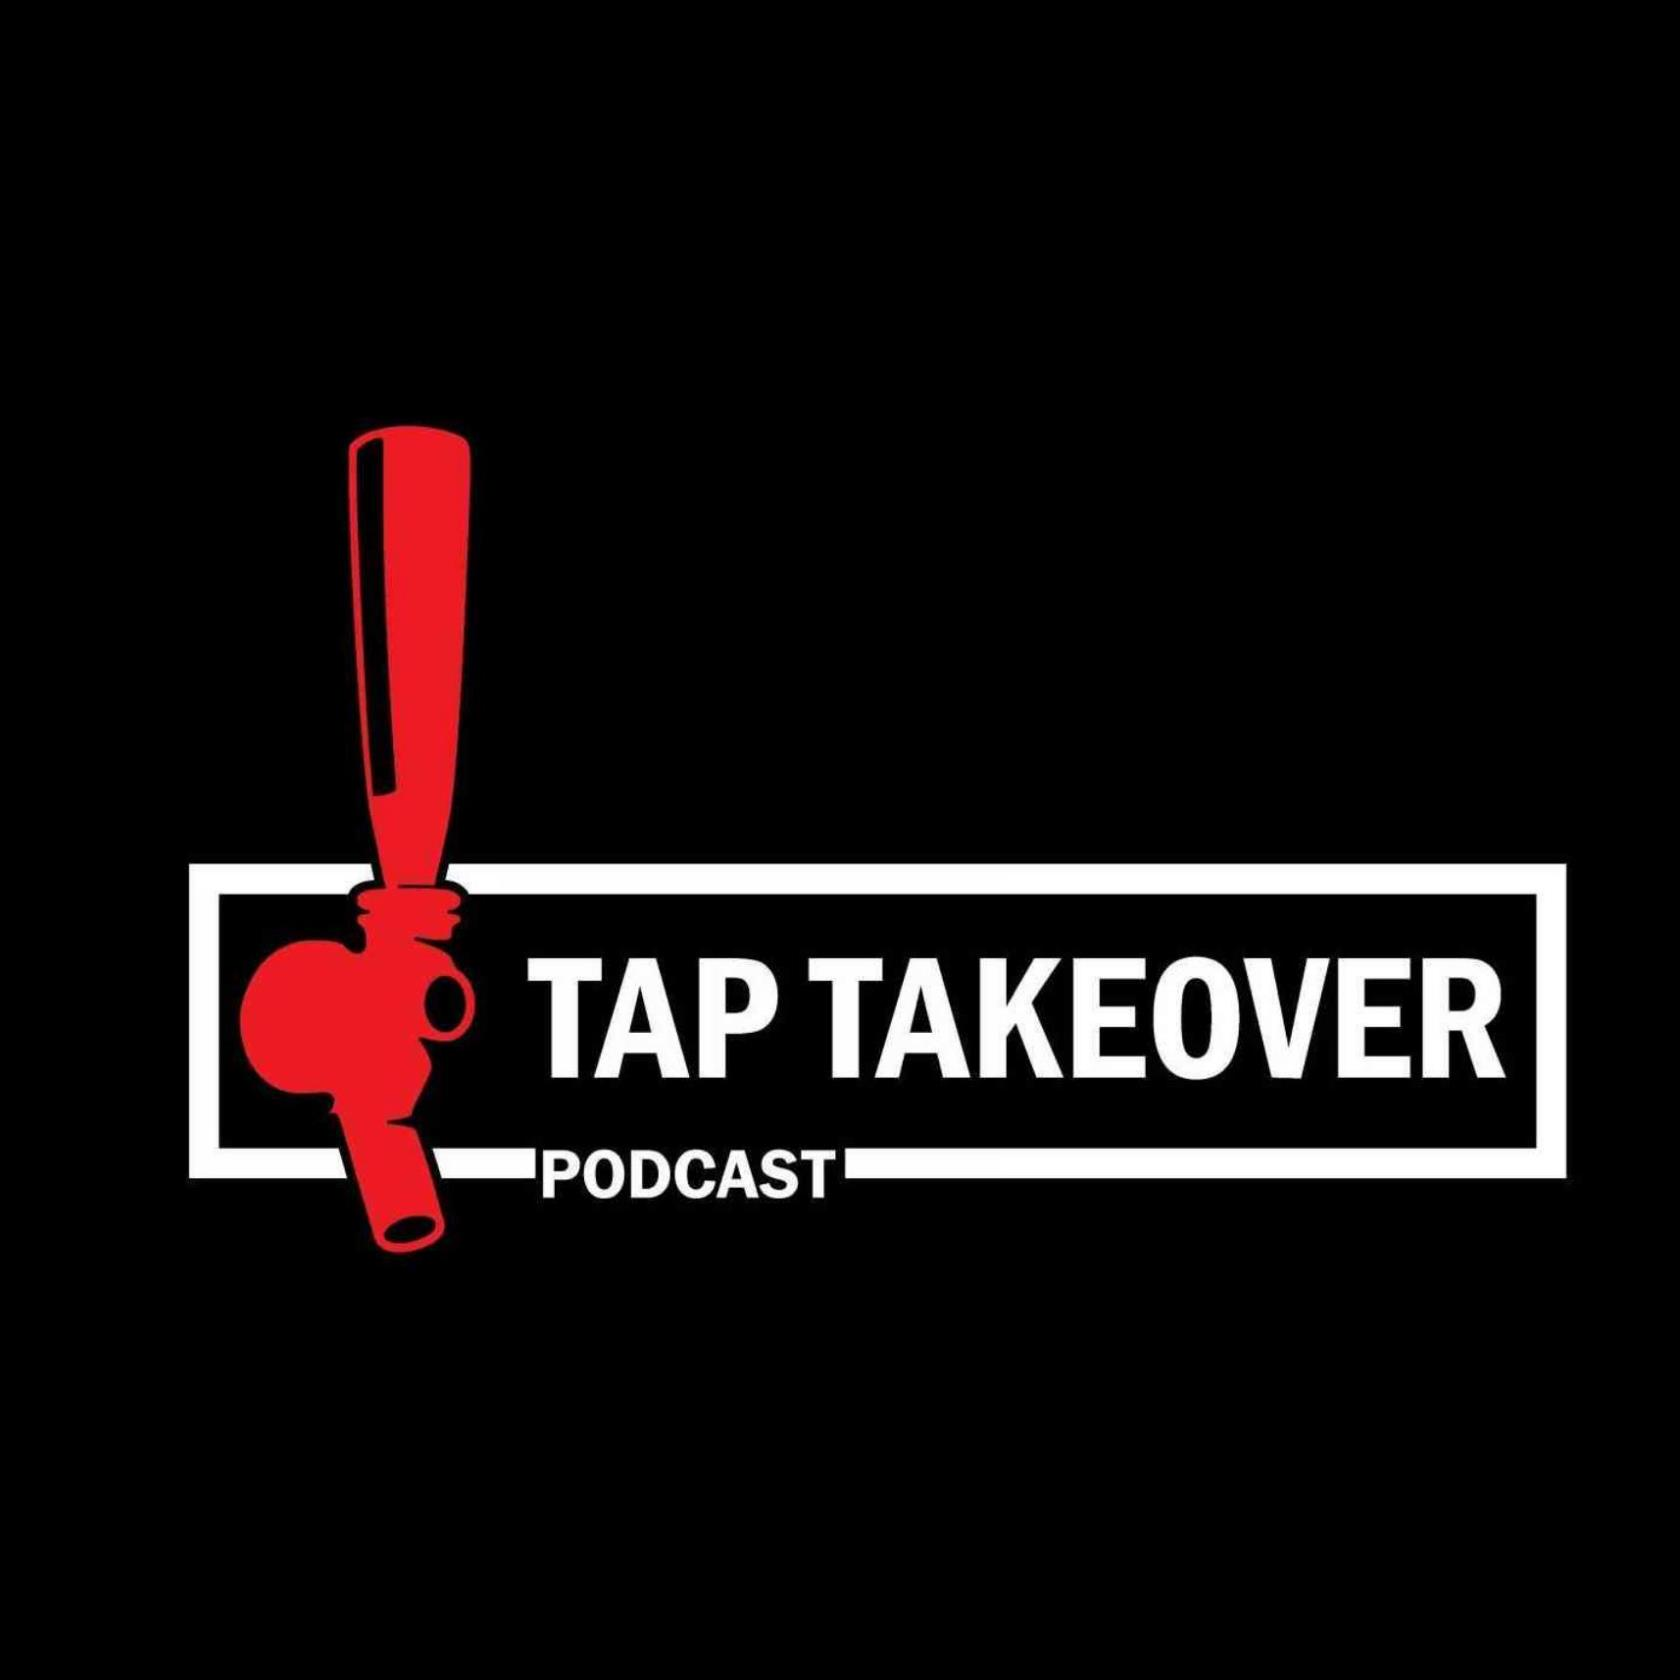 TapTakeoverPodcast show art